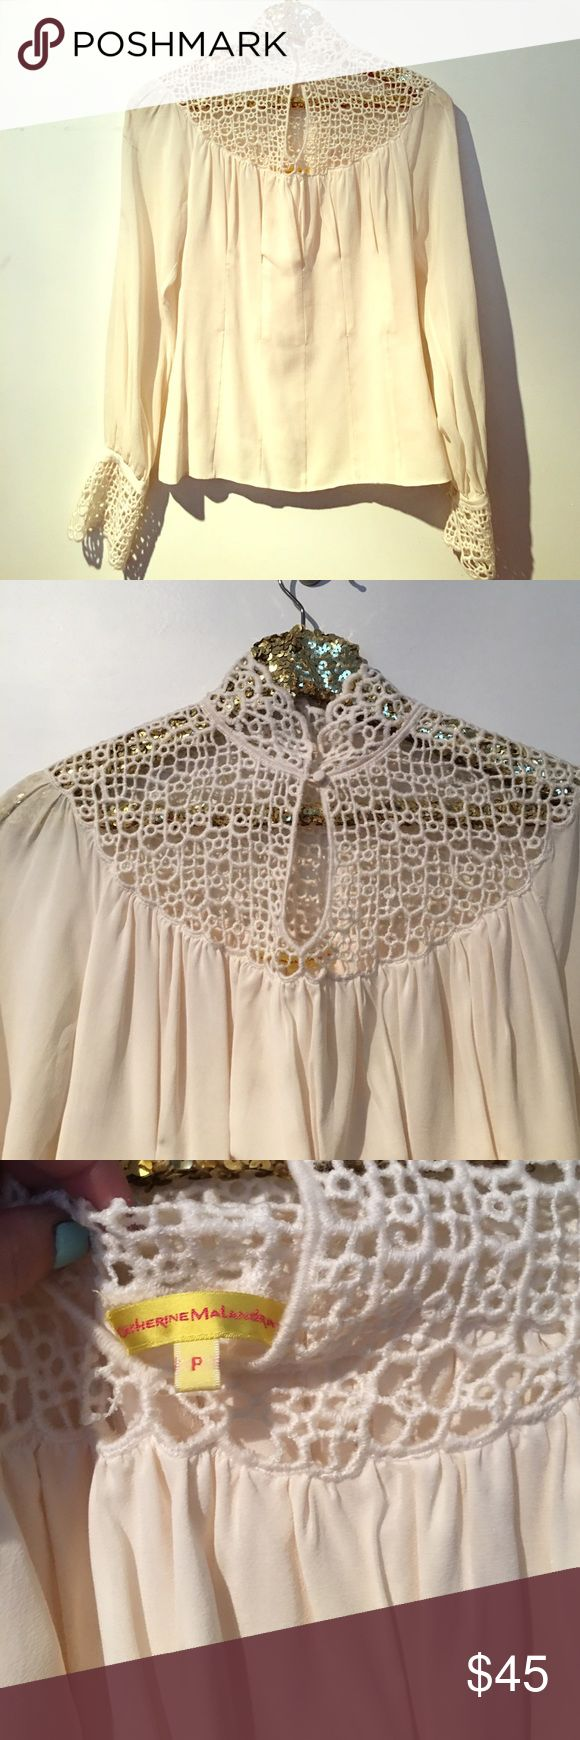 CATHERINE MALANDRINO SILK BLOUSE SIZE P New flawless silk blouse with cotton eyelet design Catherine Malandrino Tops Blouses